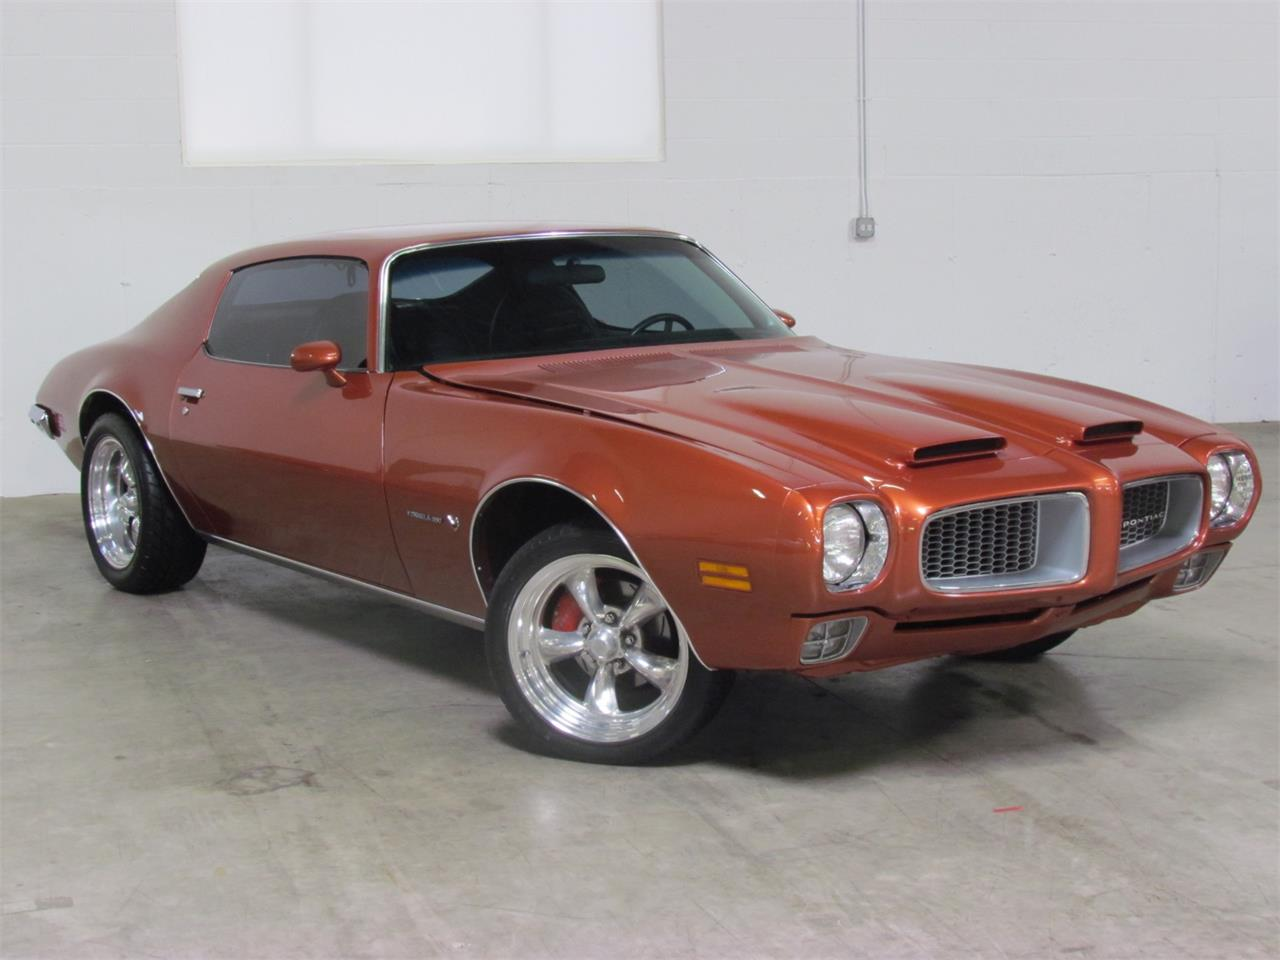 1972 Pontiac Firebird for sale in Gurnee, IL – photo 4